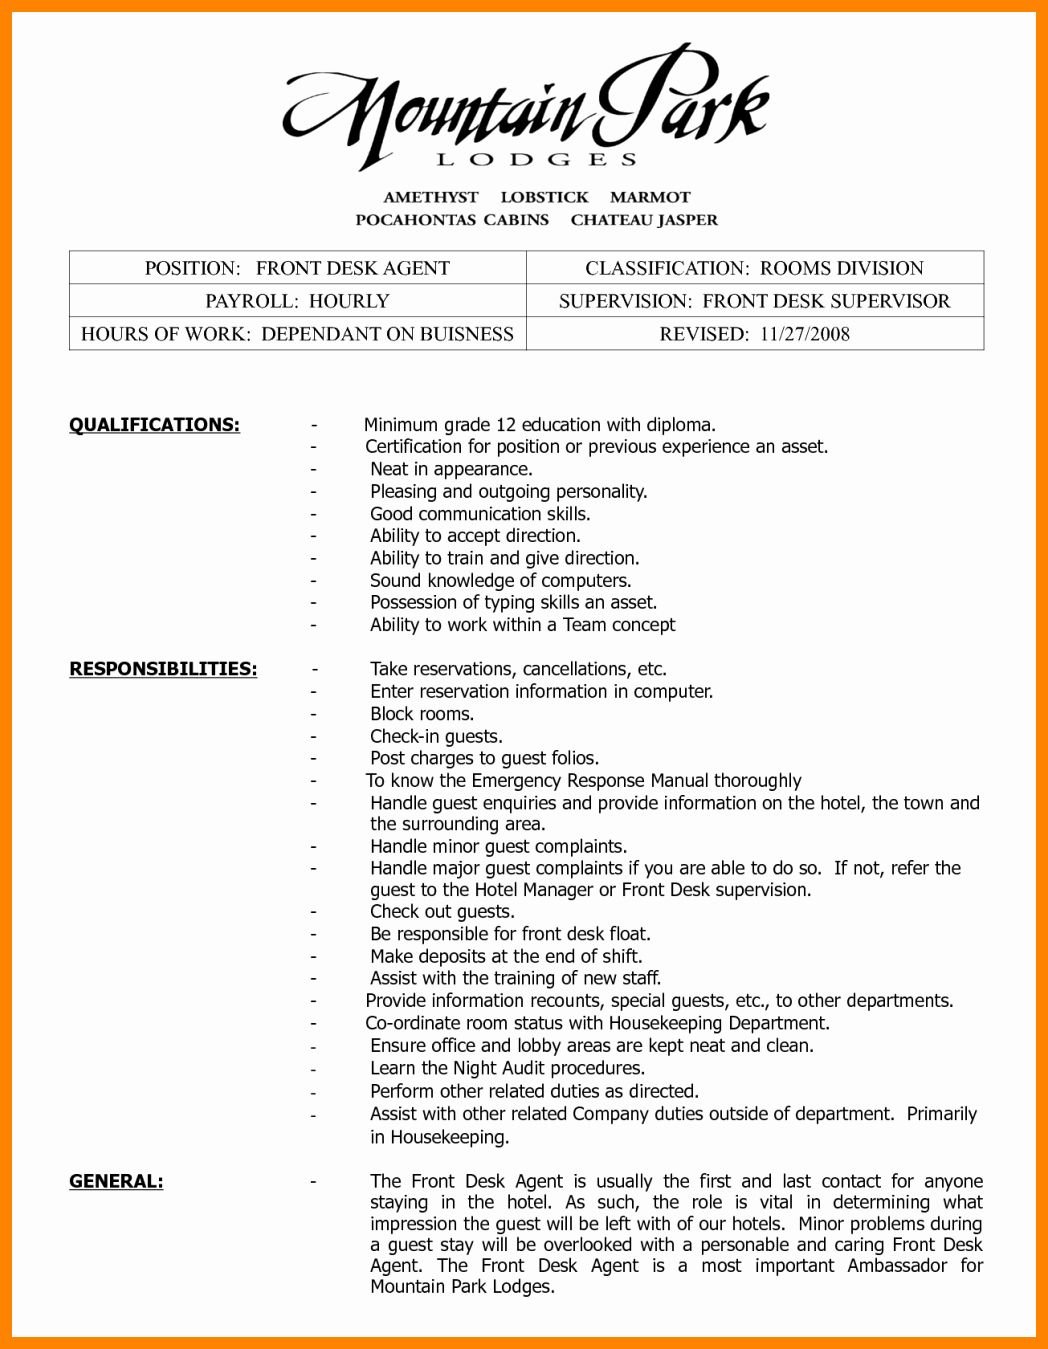 Front Desk Job Description Resume Fresh 8 Front Office Supervisor Resume Front Desk Agent Office Manager Resume Manager Resume